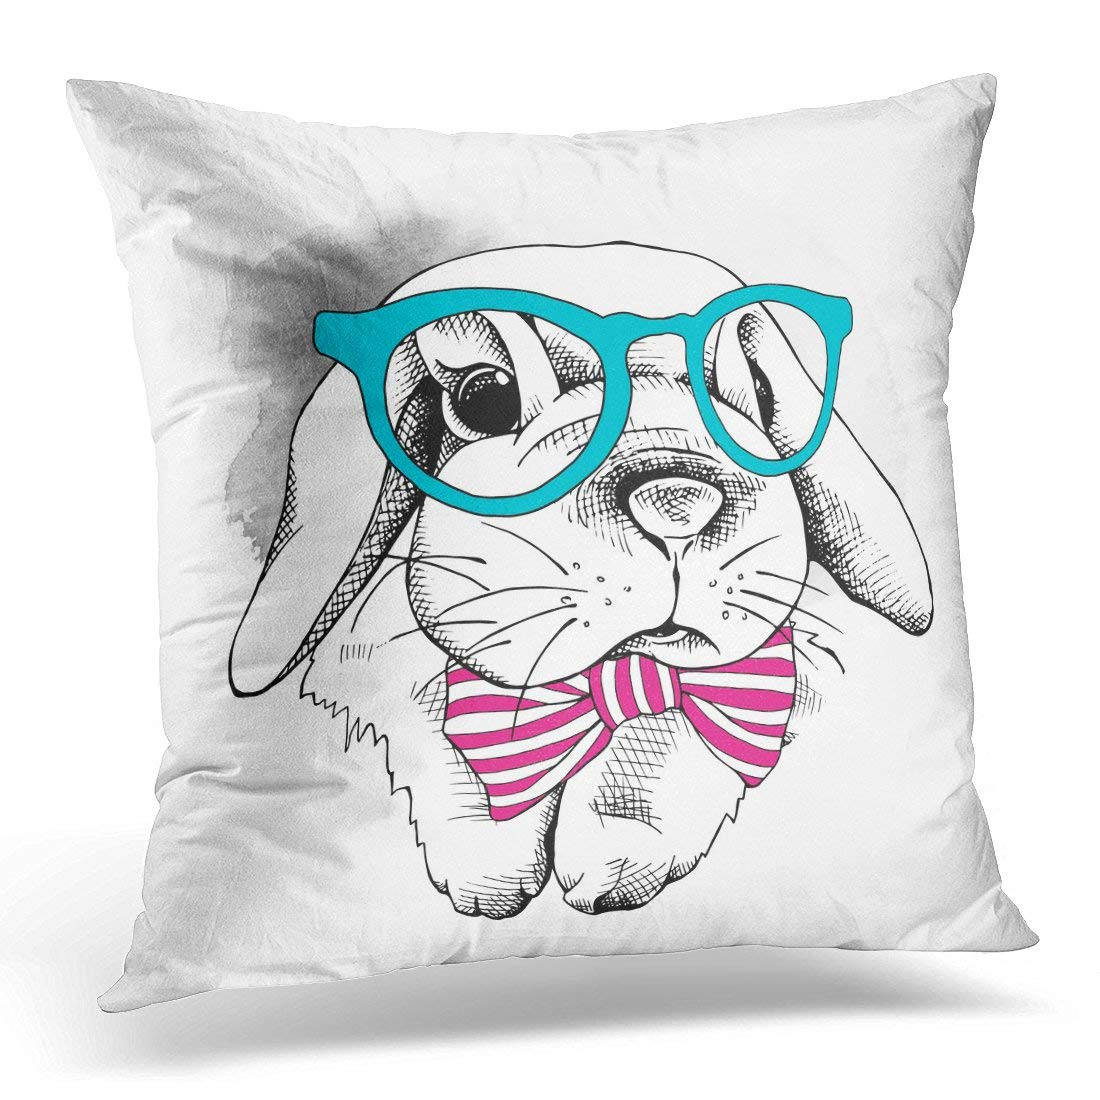 pink throw pillows for sofa dania leather bed cmfun vintage the of small rabbit in glasses bow